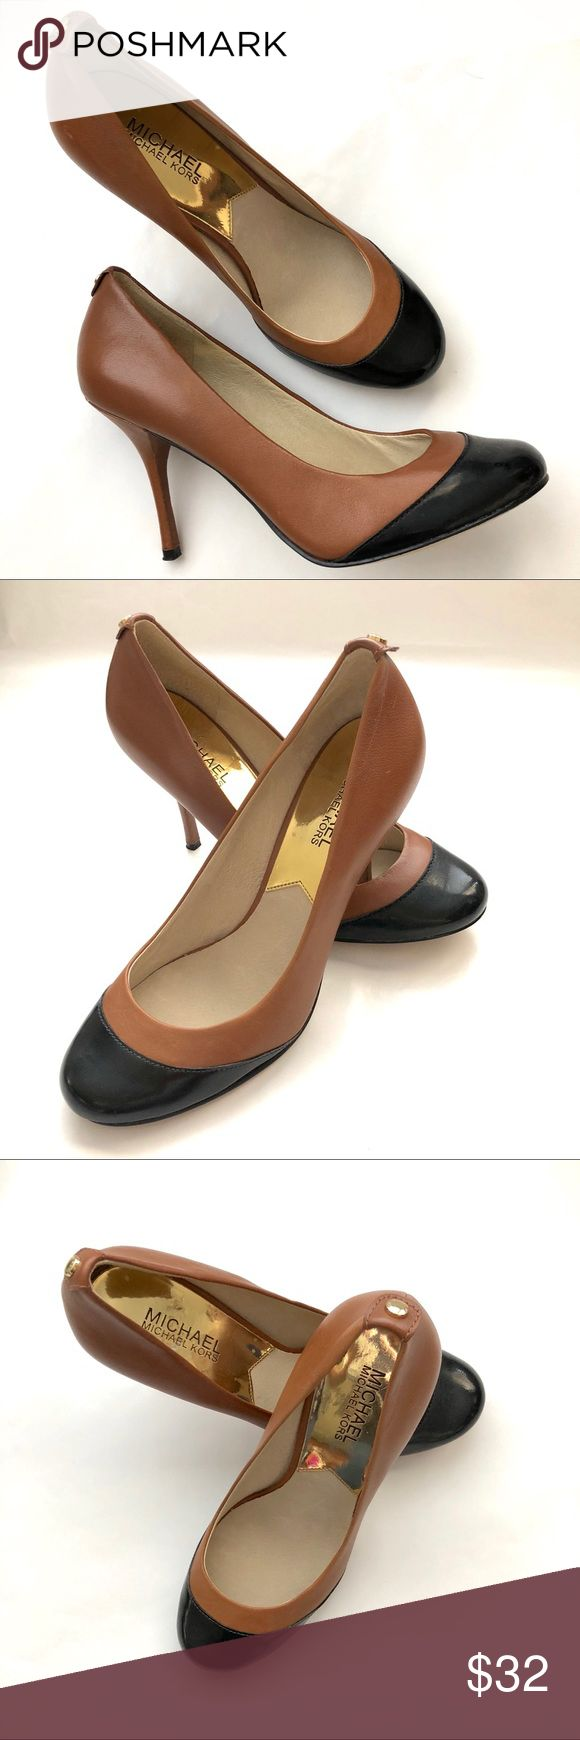 """Michael Kors Two Tone Heels SZ 7 Lovely two tone heels, small scuffs on the left shoe not hardly noticeable, great condition! Like new! Heel height is 3.5"""". MICHAEL Michael Kors Shoes Heels"""